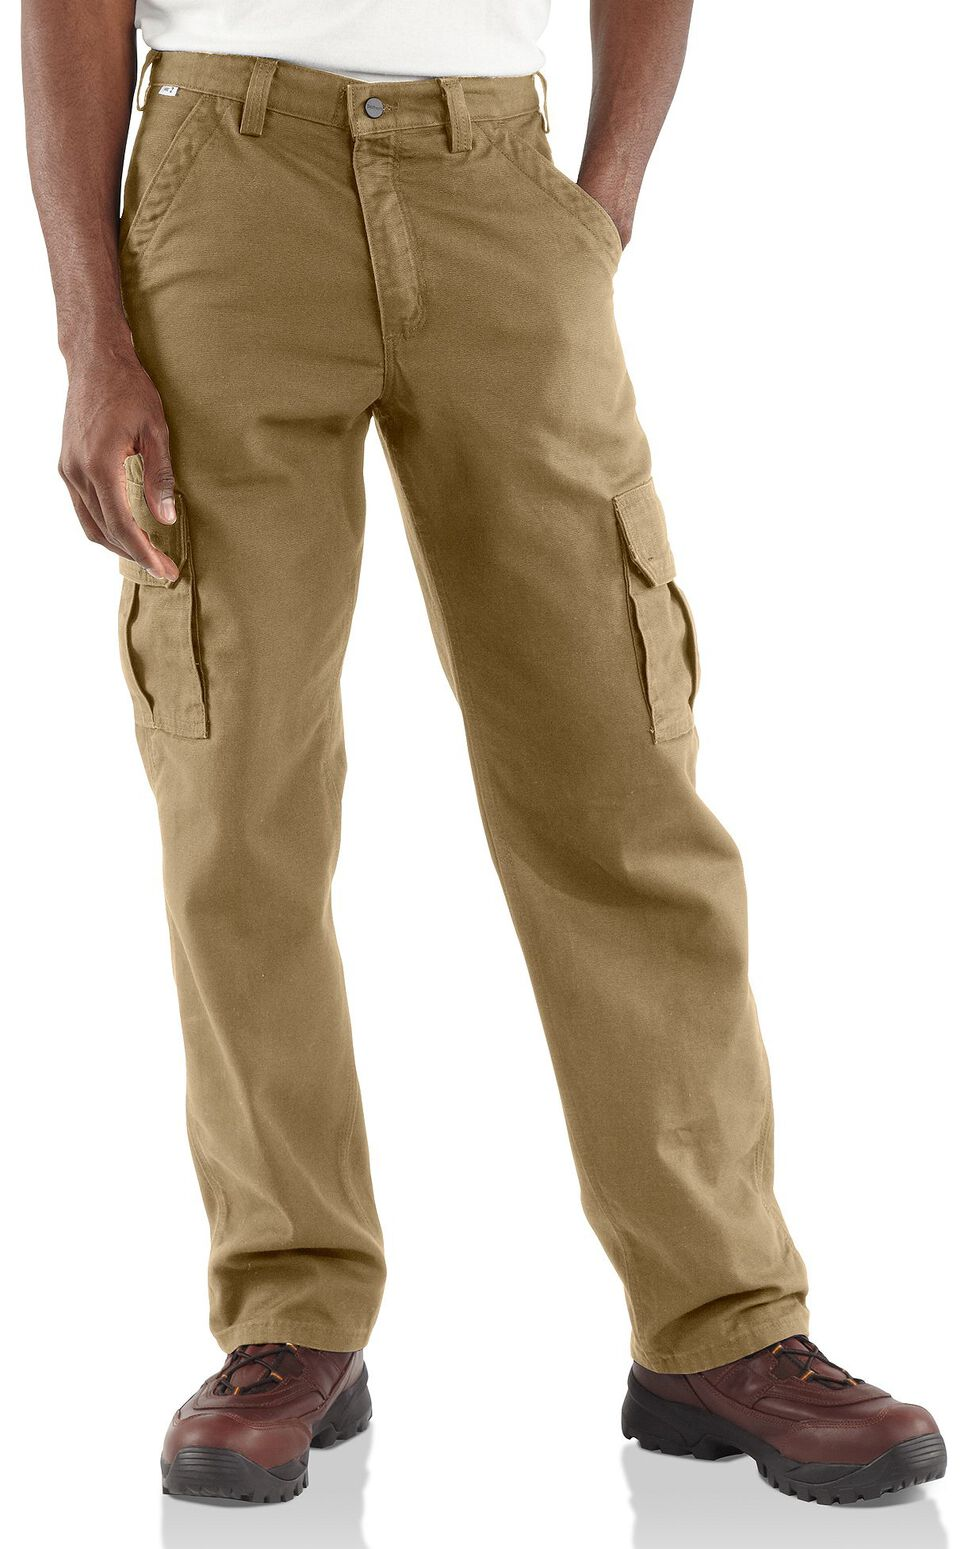 Carhartt Flame Resistant Canvas Cargo Pants - Big & Tall, Khaki, hi-res